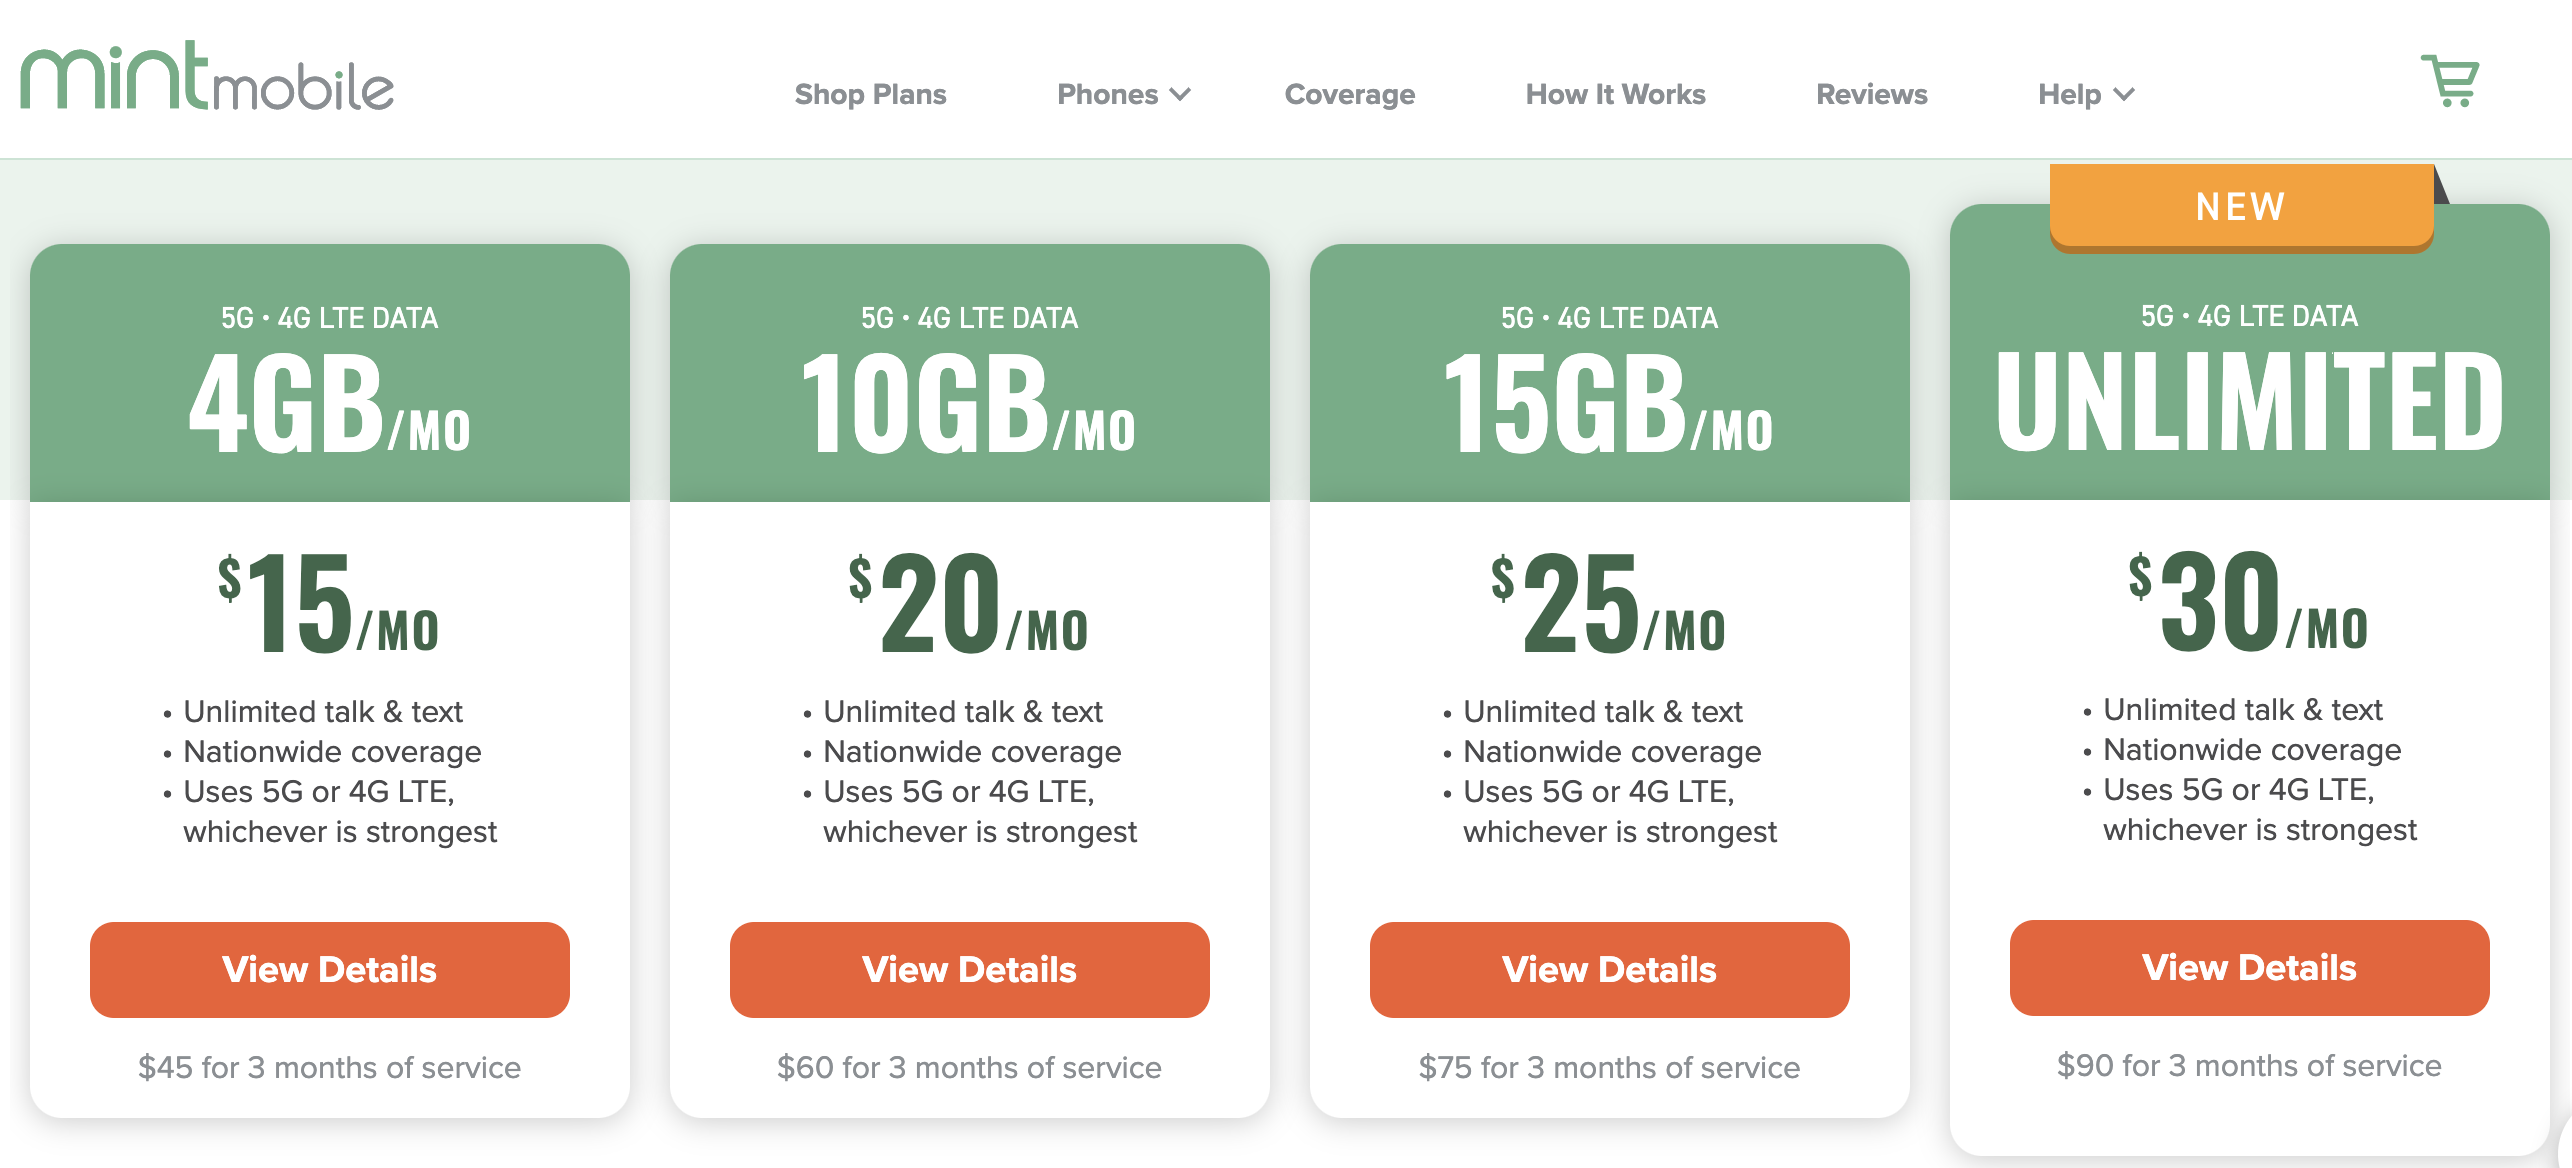 Screenshot of Mint Mobile's cell phone plans at $15 to $30 per month